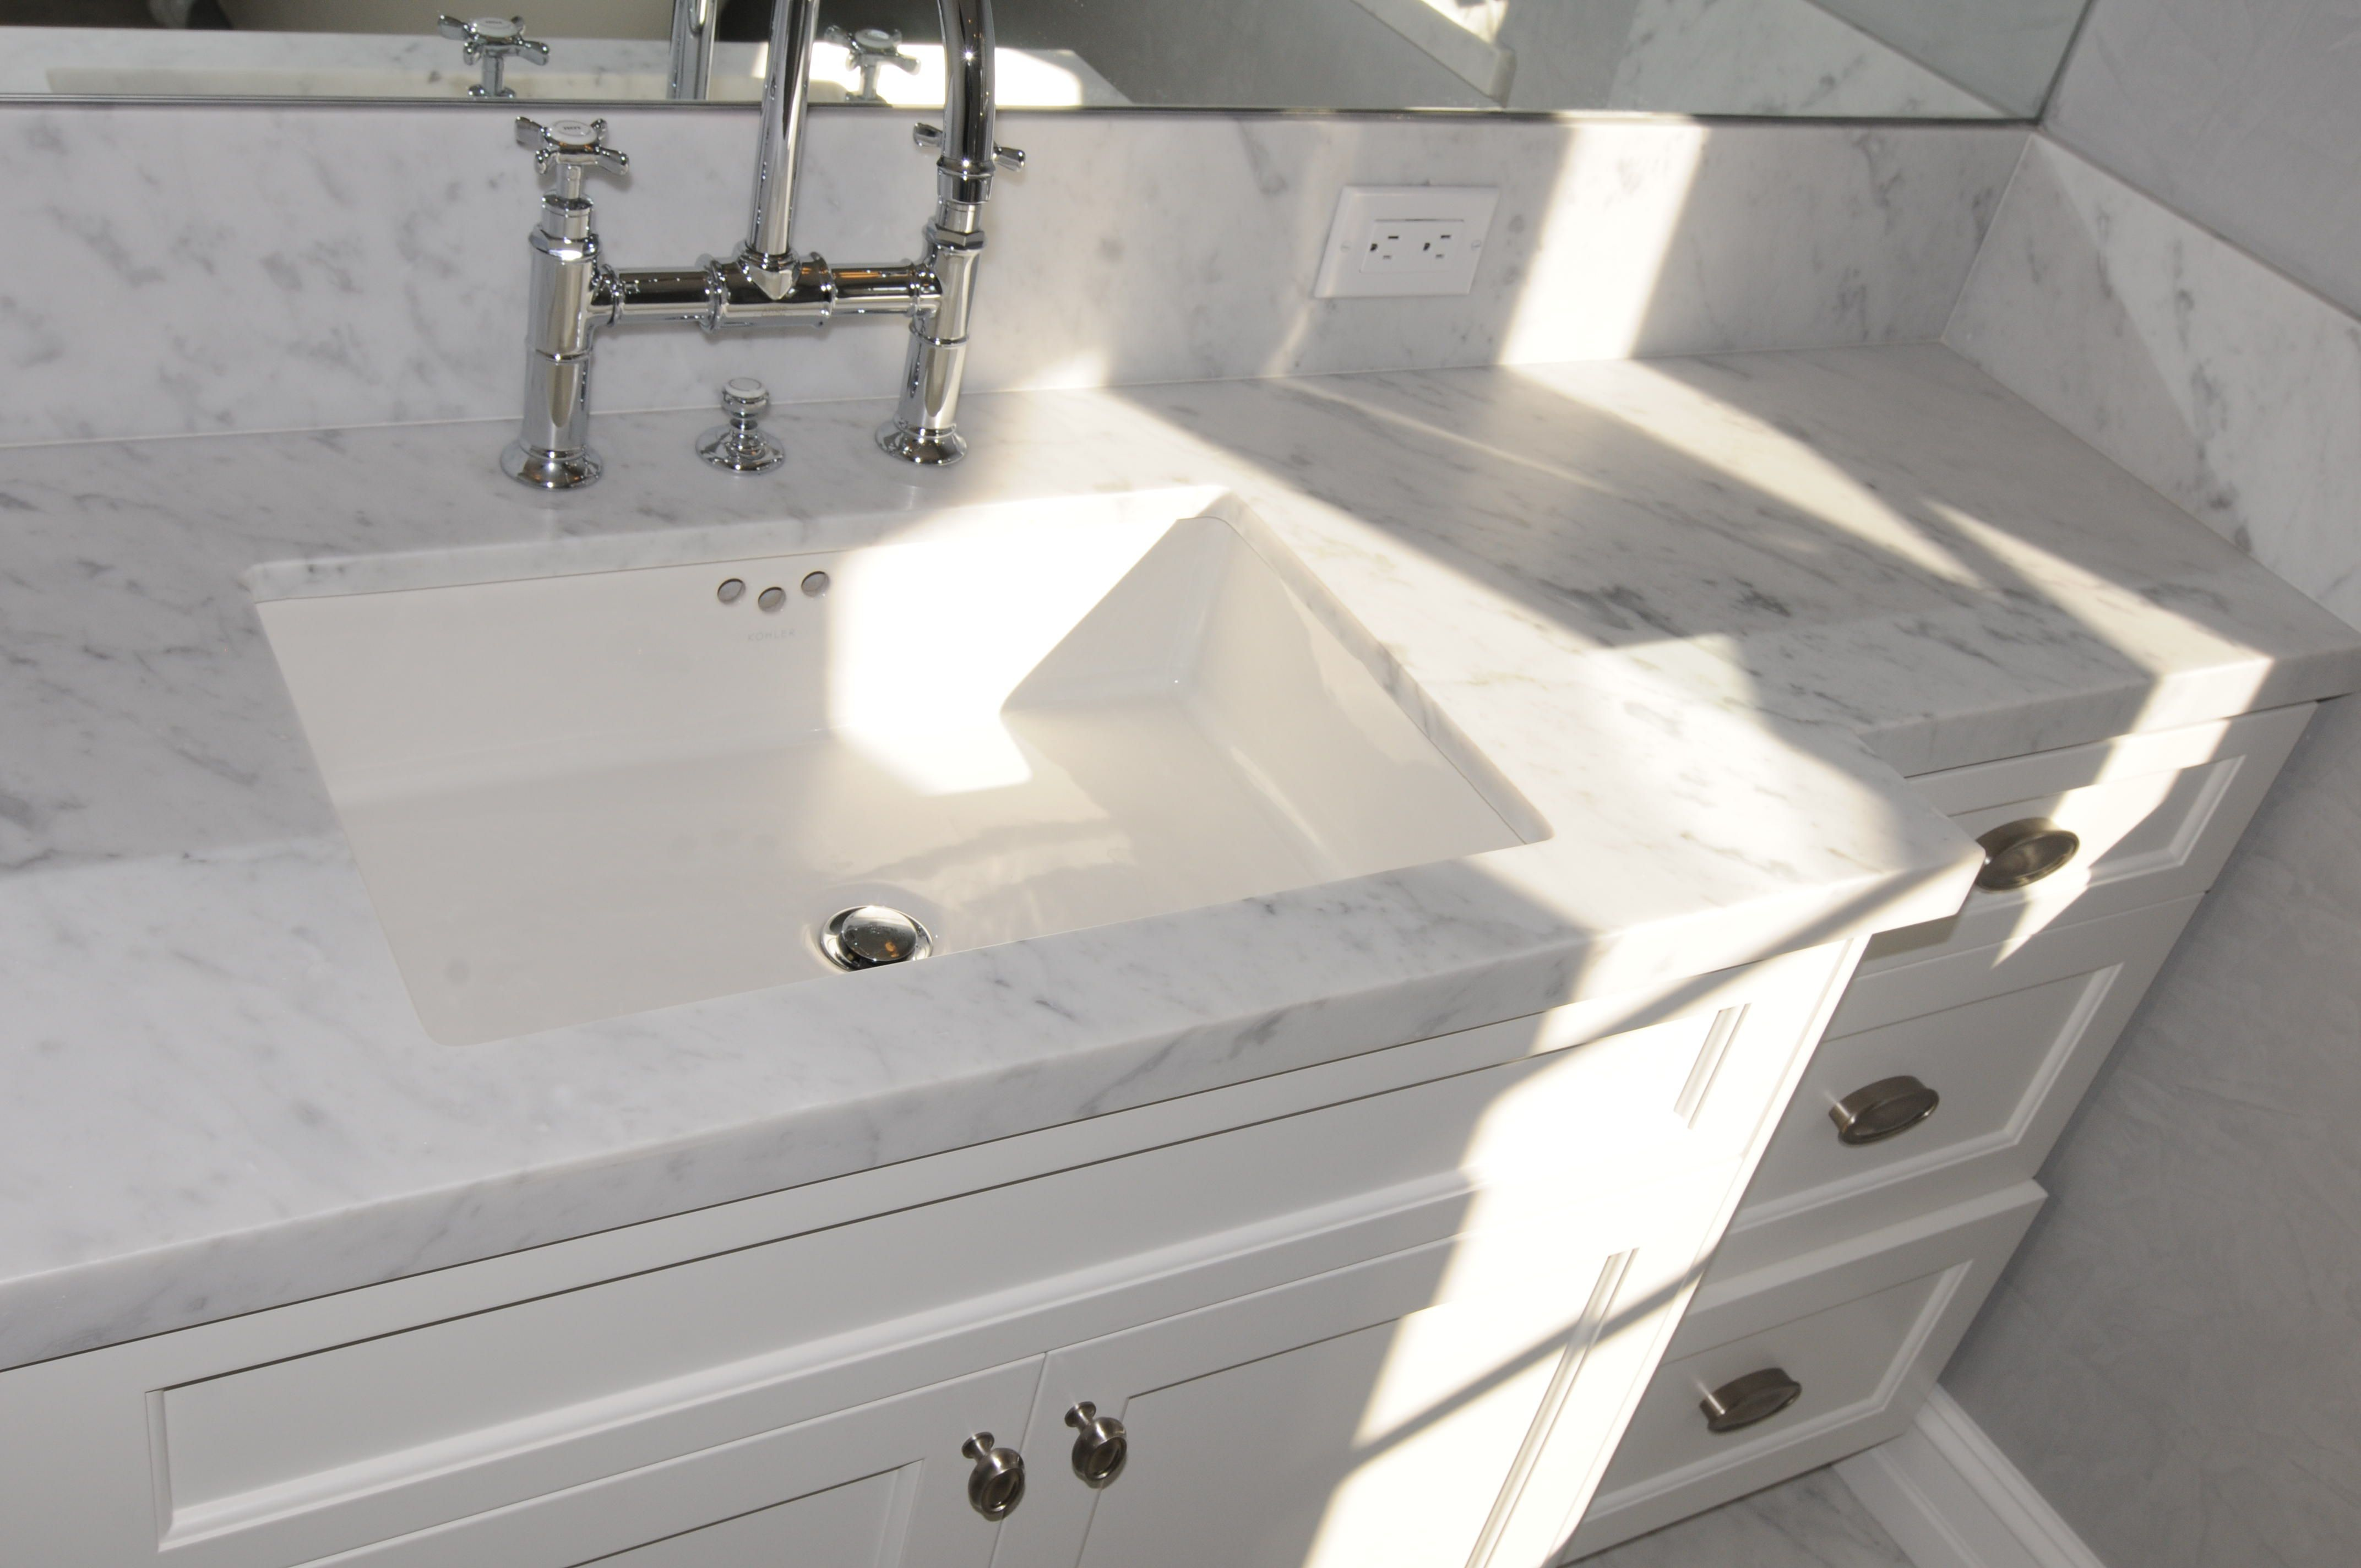 Interior Bathroom Kitchen Elegant White Marble Counter Top Combined Ceramic  Trough Sink And Painted Wooden Vanity Cultured Marble Countertops